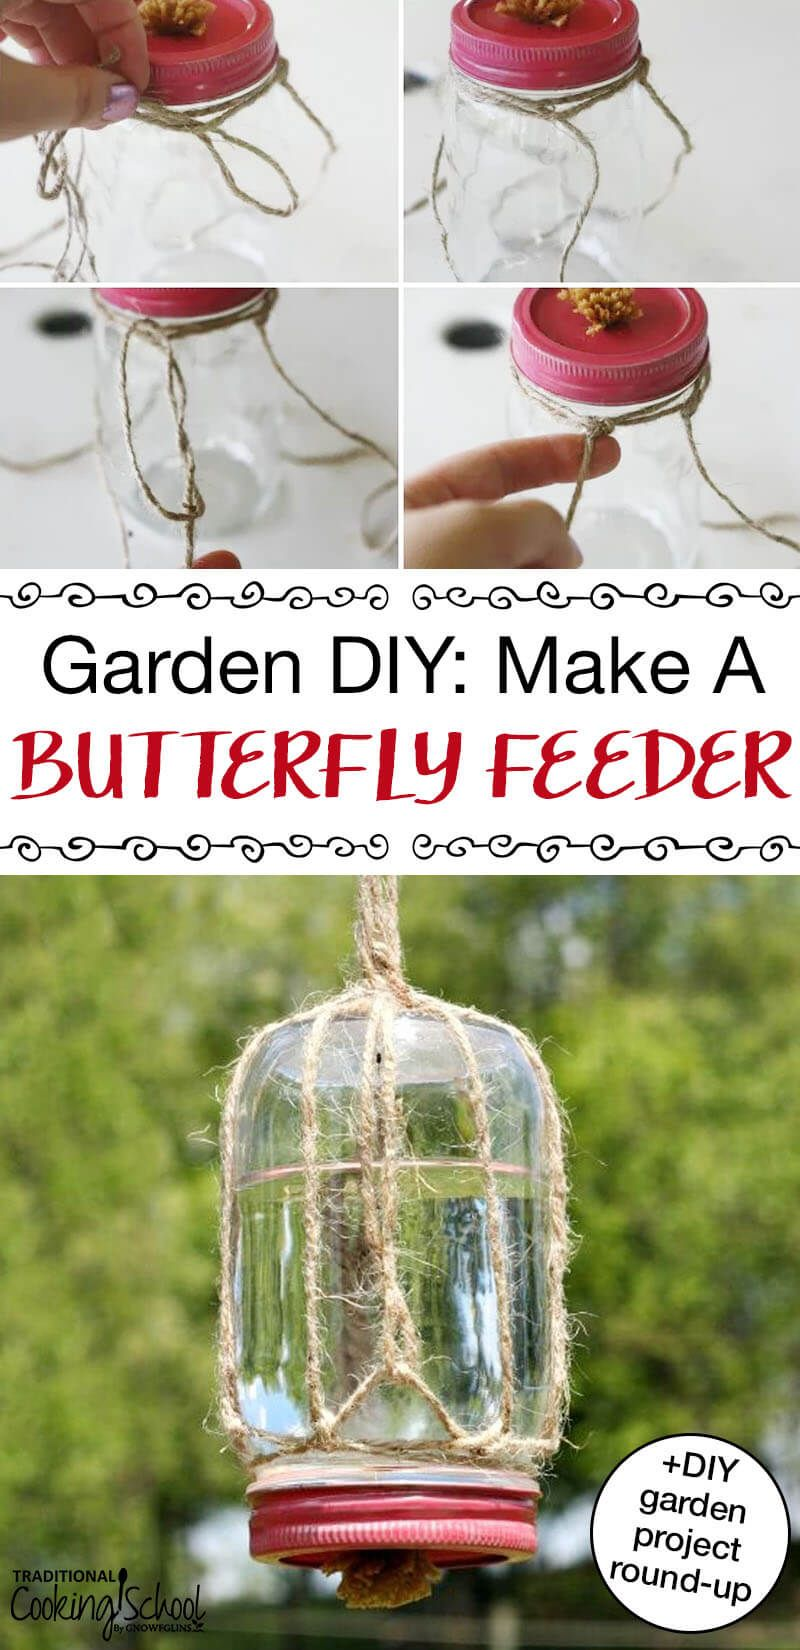 How To Make A DIY Butterfly Feeder For Your Garden #gardencraft